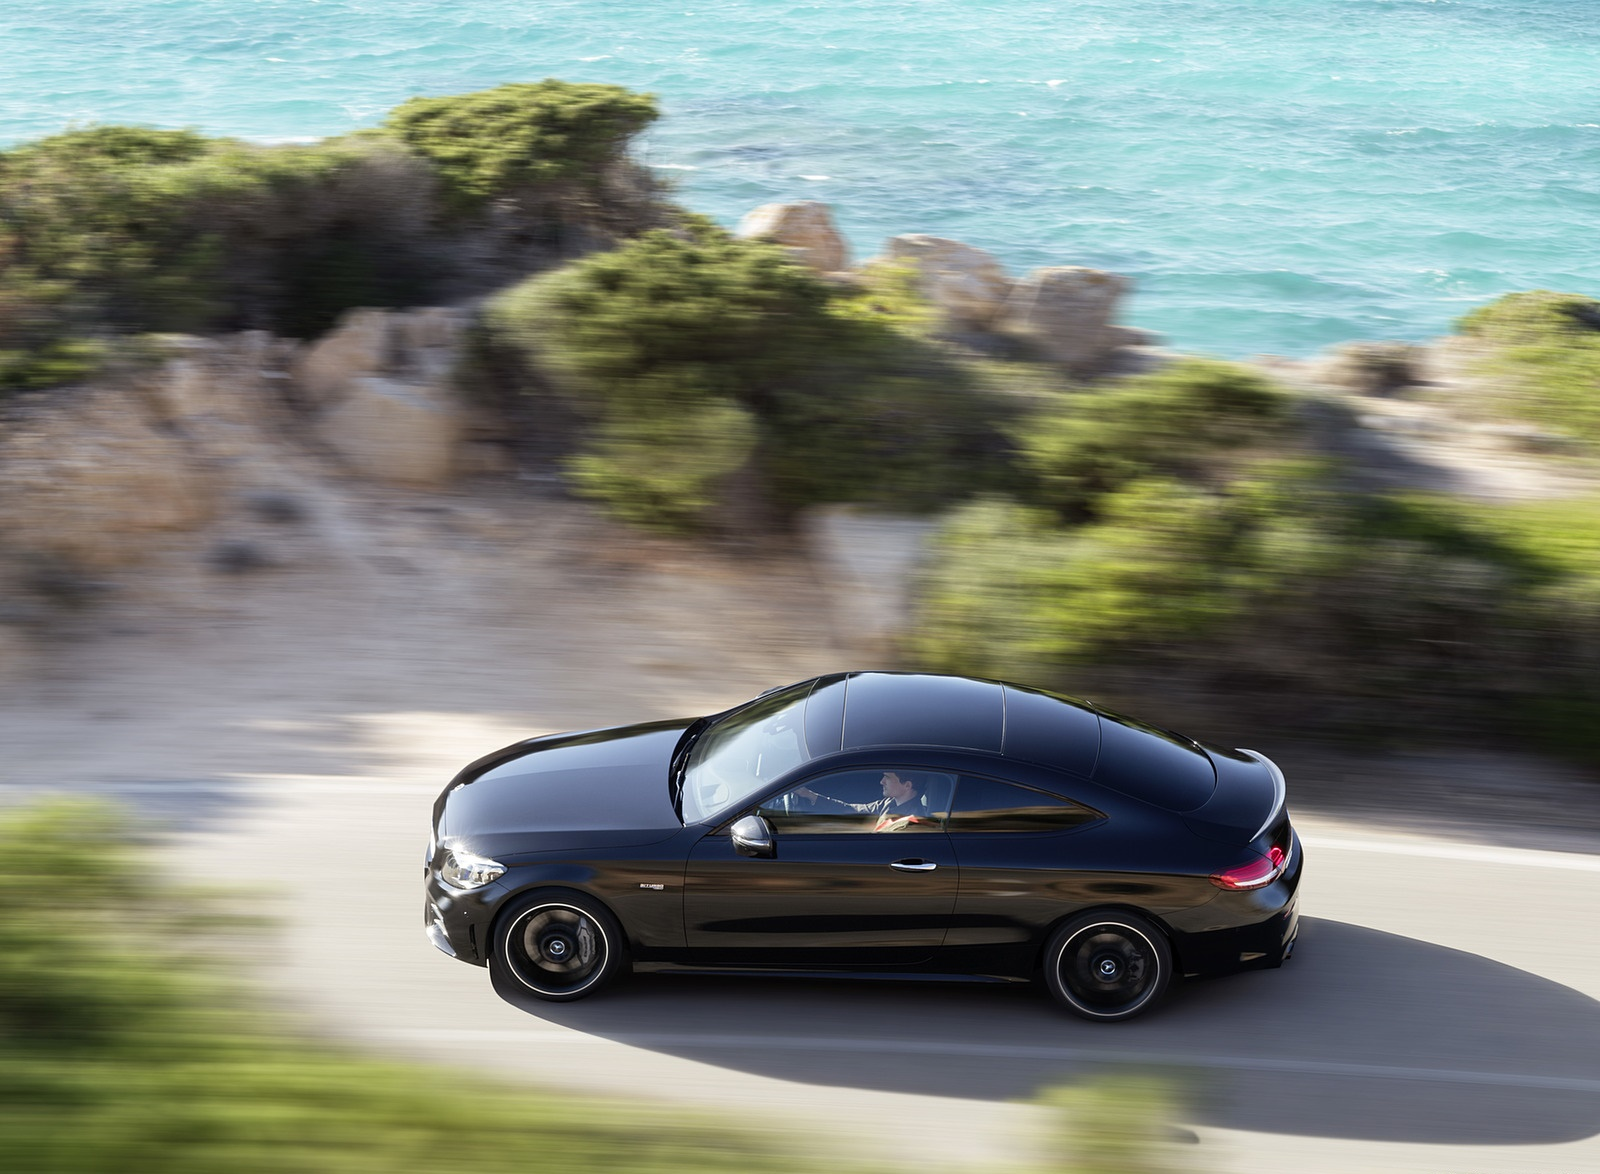 2019 Mercedes-AMG C43 Coupe Wallpapers (136+ HD Images